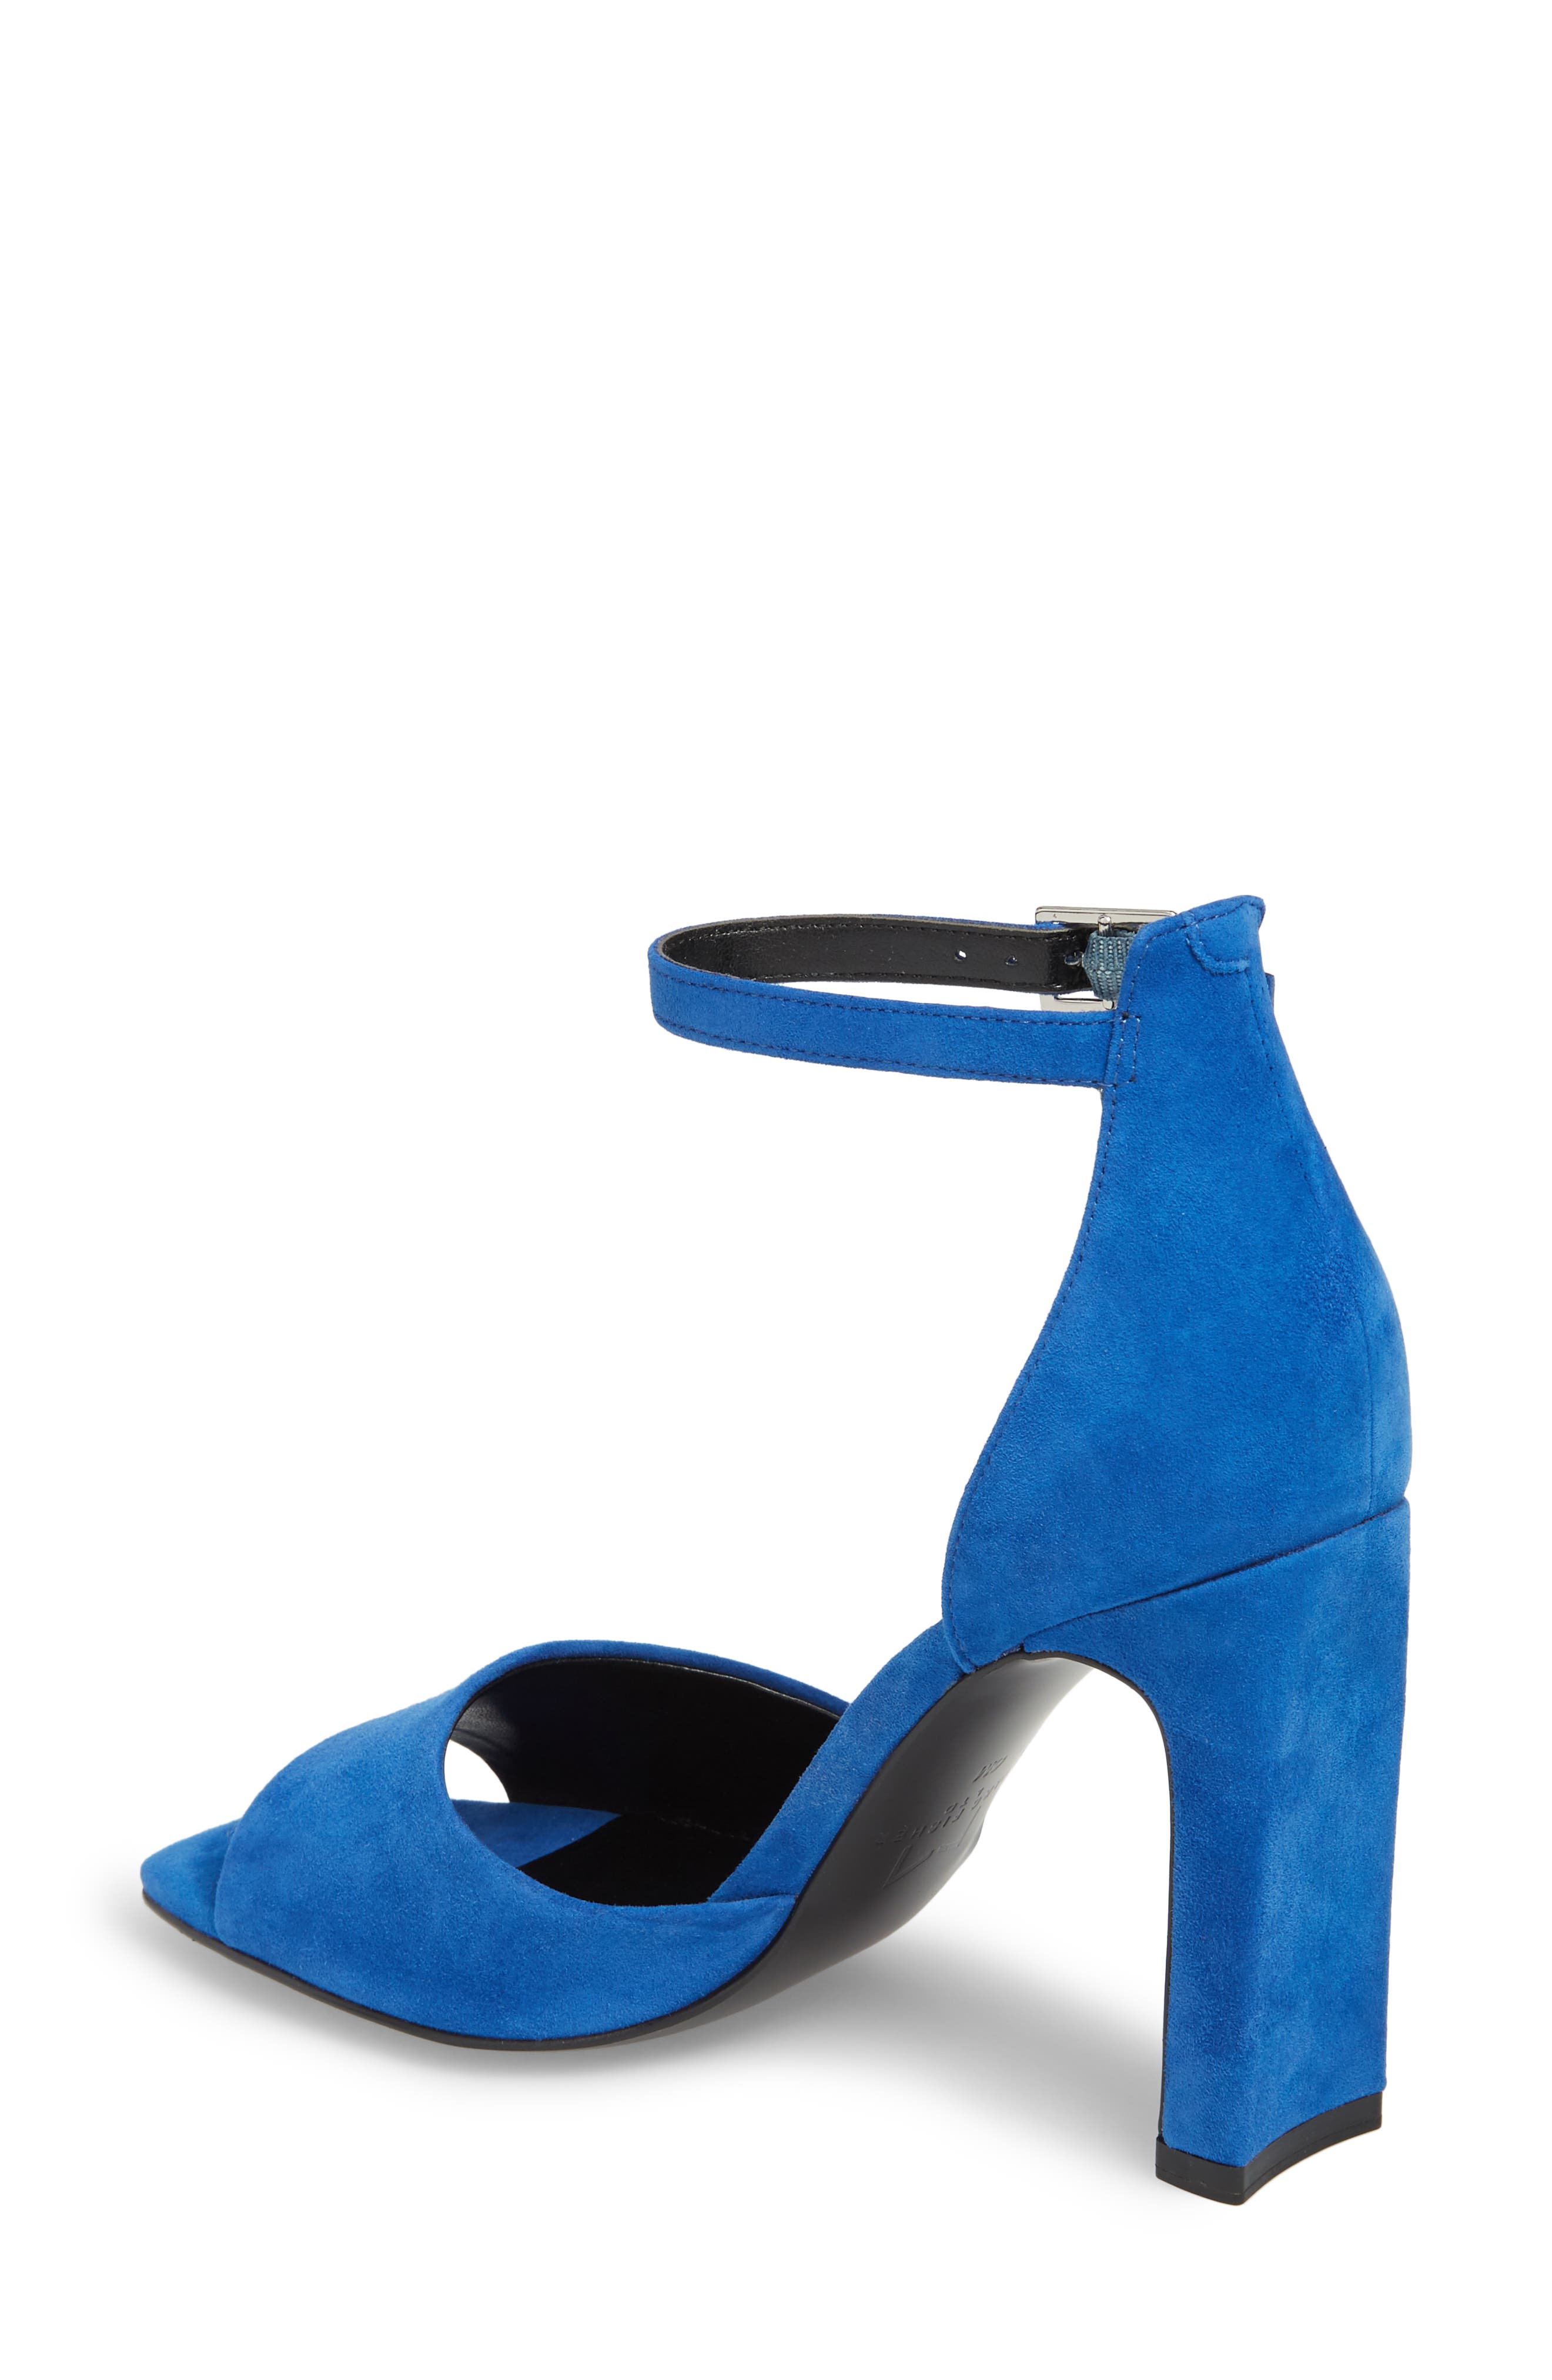 Harlin Ankle Strap Sandal,                             Alternate thumbnail 2, color,                             BLUE SUEDE